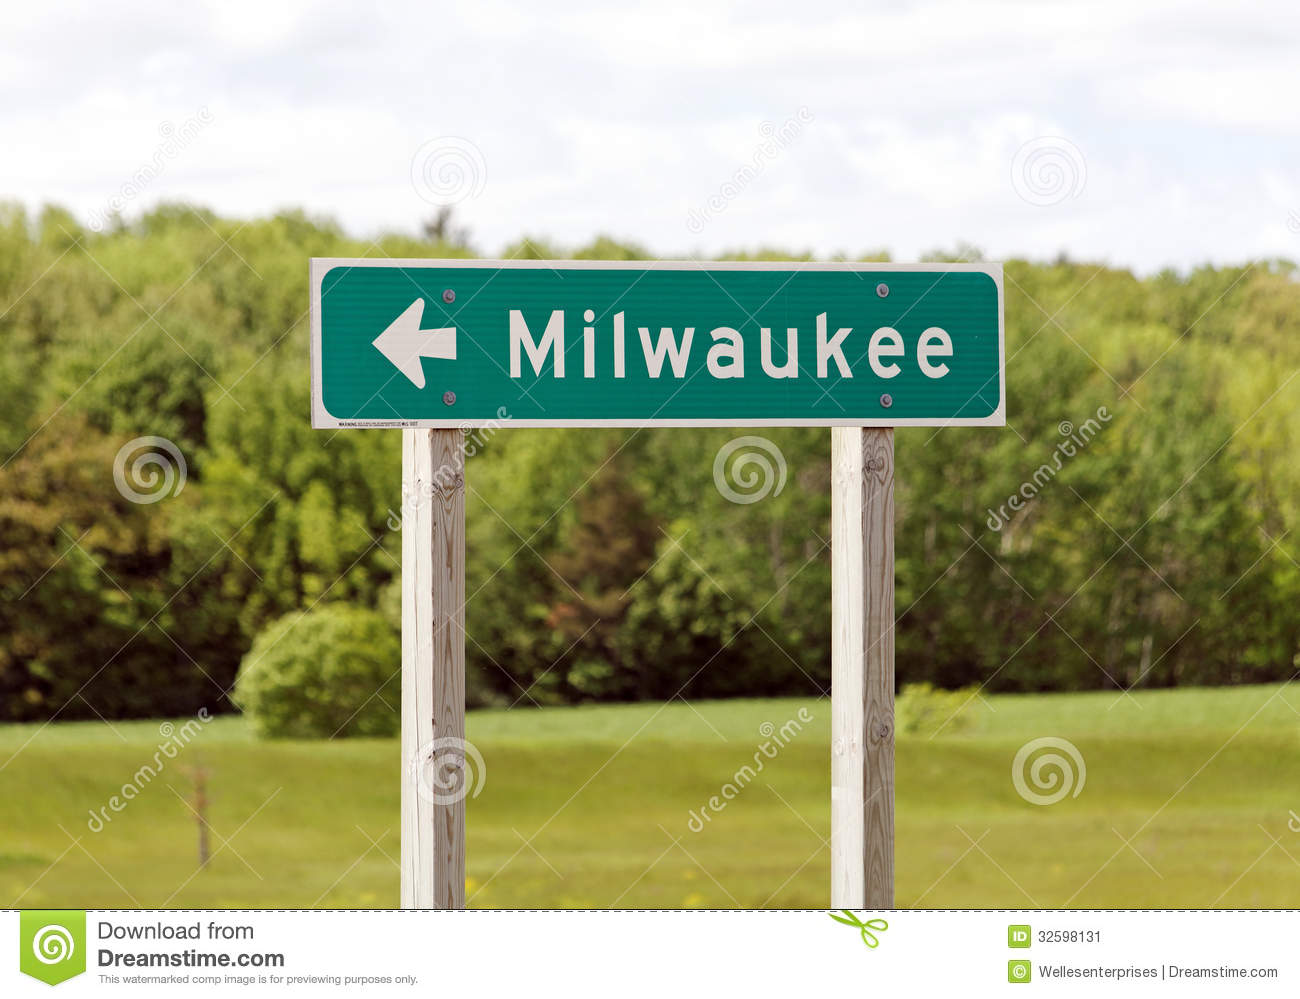 This Way To Milwaukee Stock Image  Image 32598131. Bathroom Signs Of Stroke. Genius Signs Of Stroke. Zap Signs Of Stroke. Band Signs Of Stroke. Lime Green Signs Of Stroke. Dampness Signs Of Stroke. Adrenal Fatigue Signs. Reflective Signs